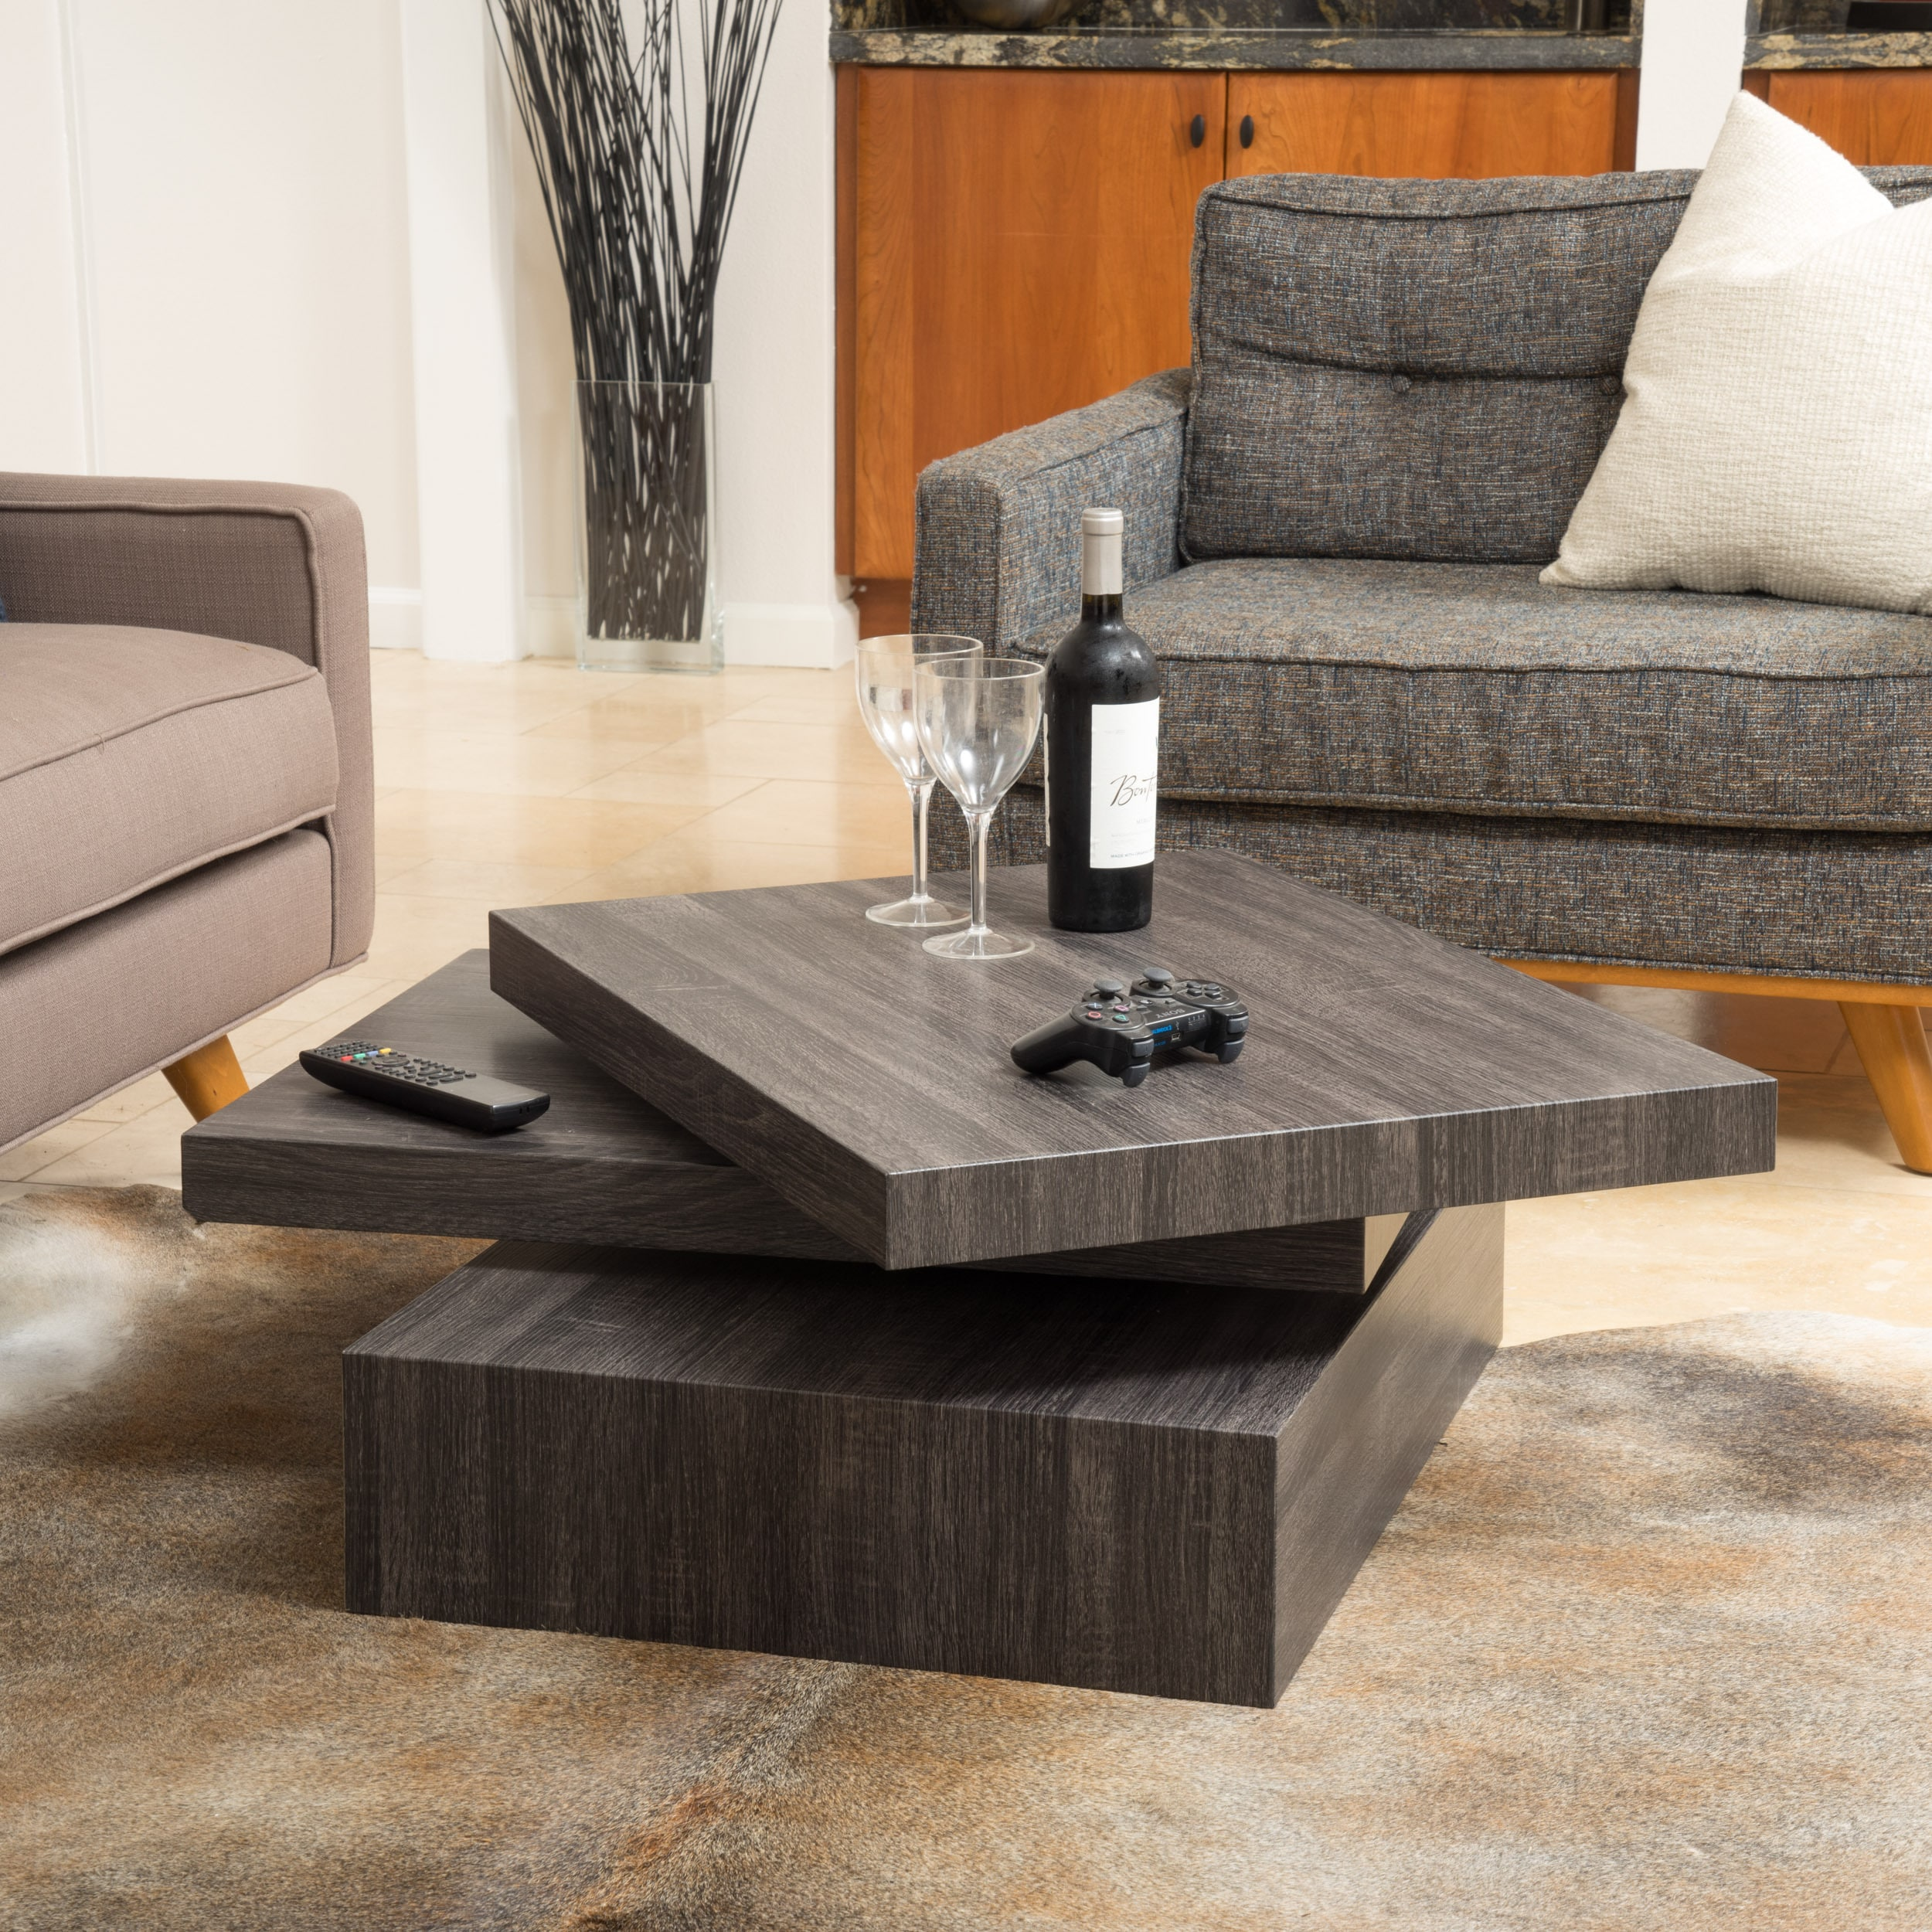 navana revolving chair price in bangladesh lifetime covers buy coffee console sofa and end tables online at overstock